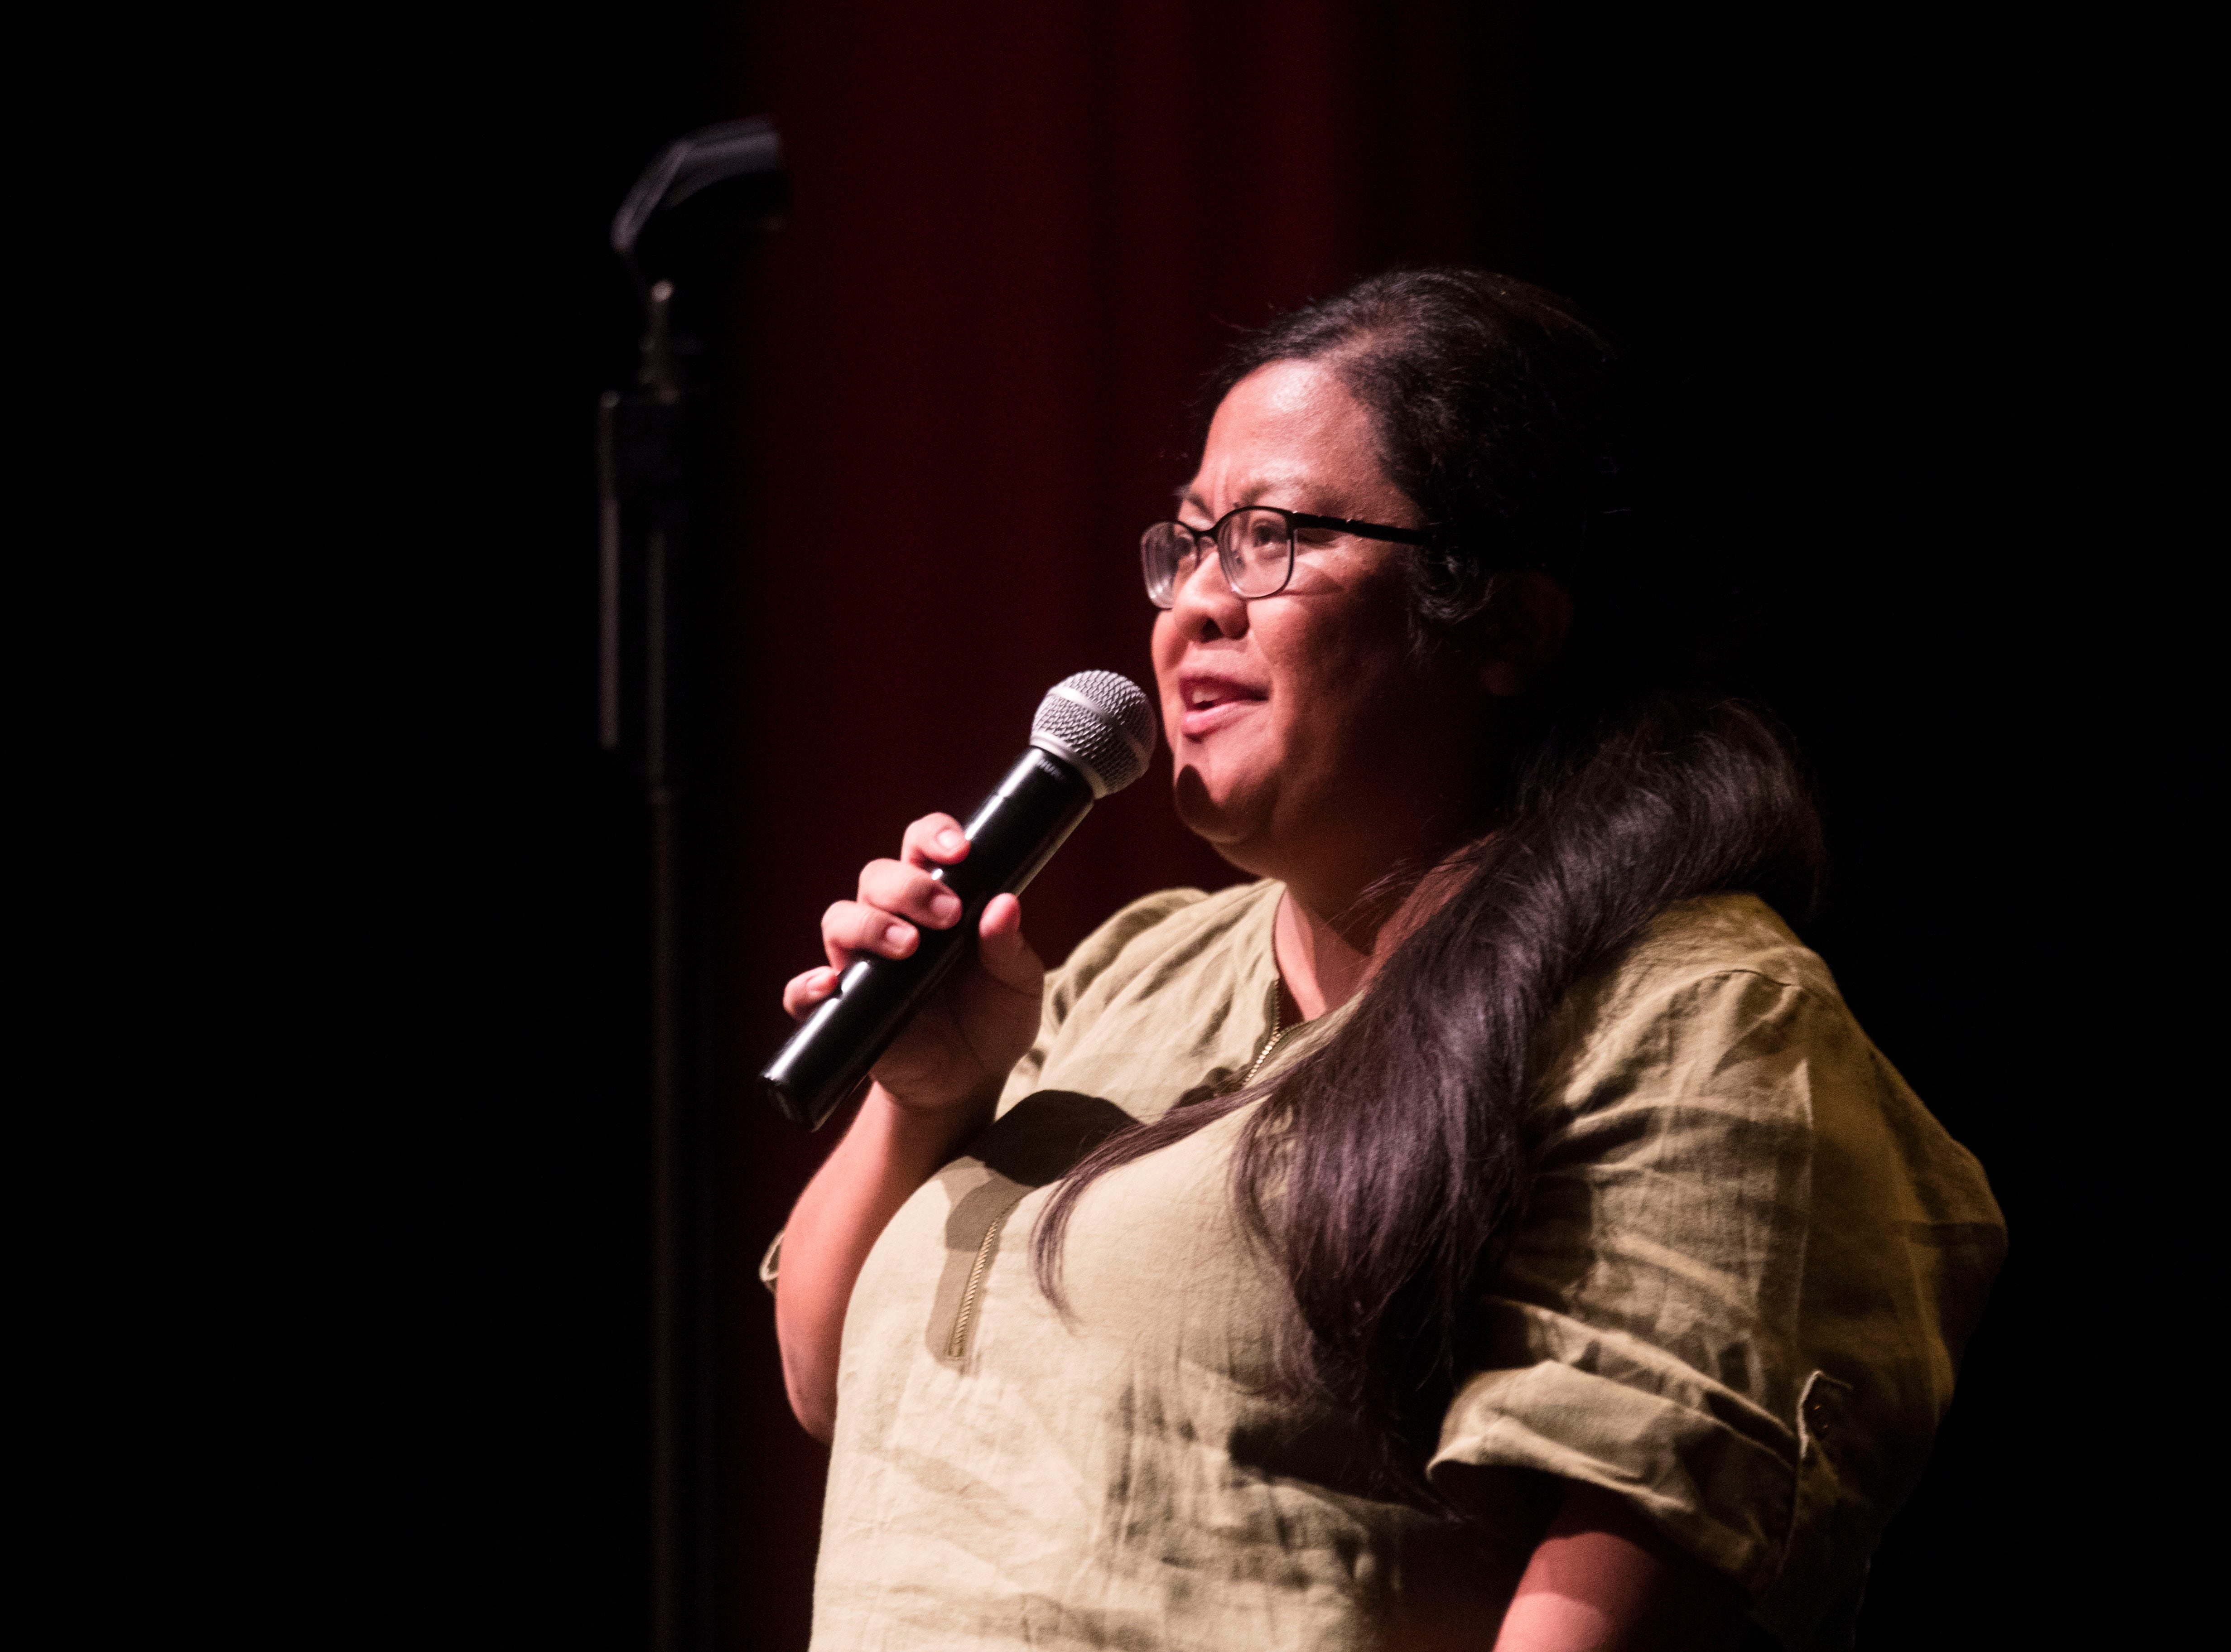 Michelle Castillo shares her story during The Storytellers Project at the Palm Springs Art Museum on September 5, 2018.